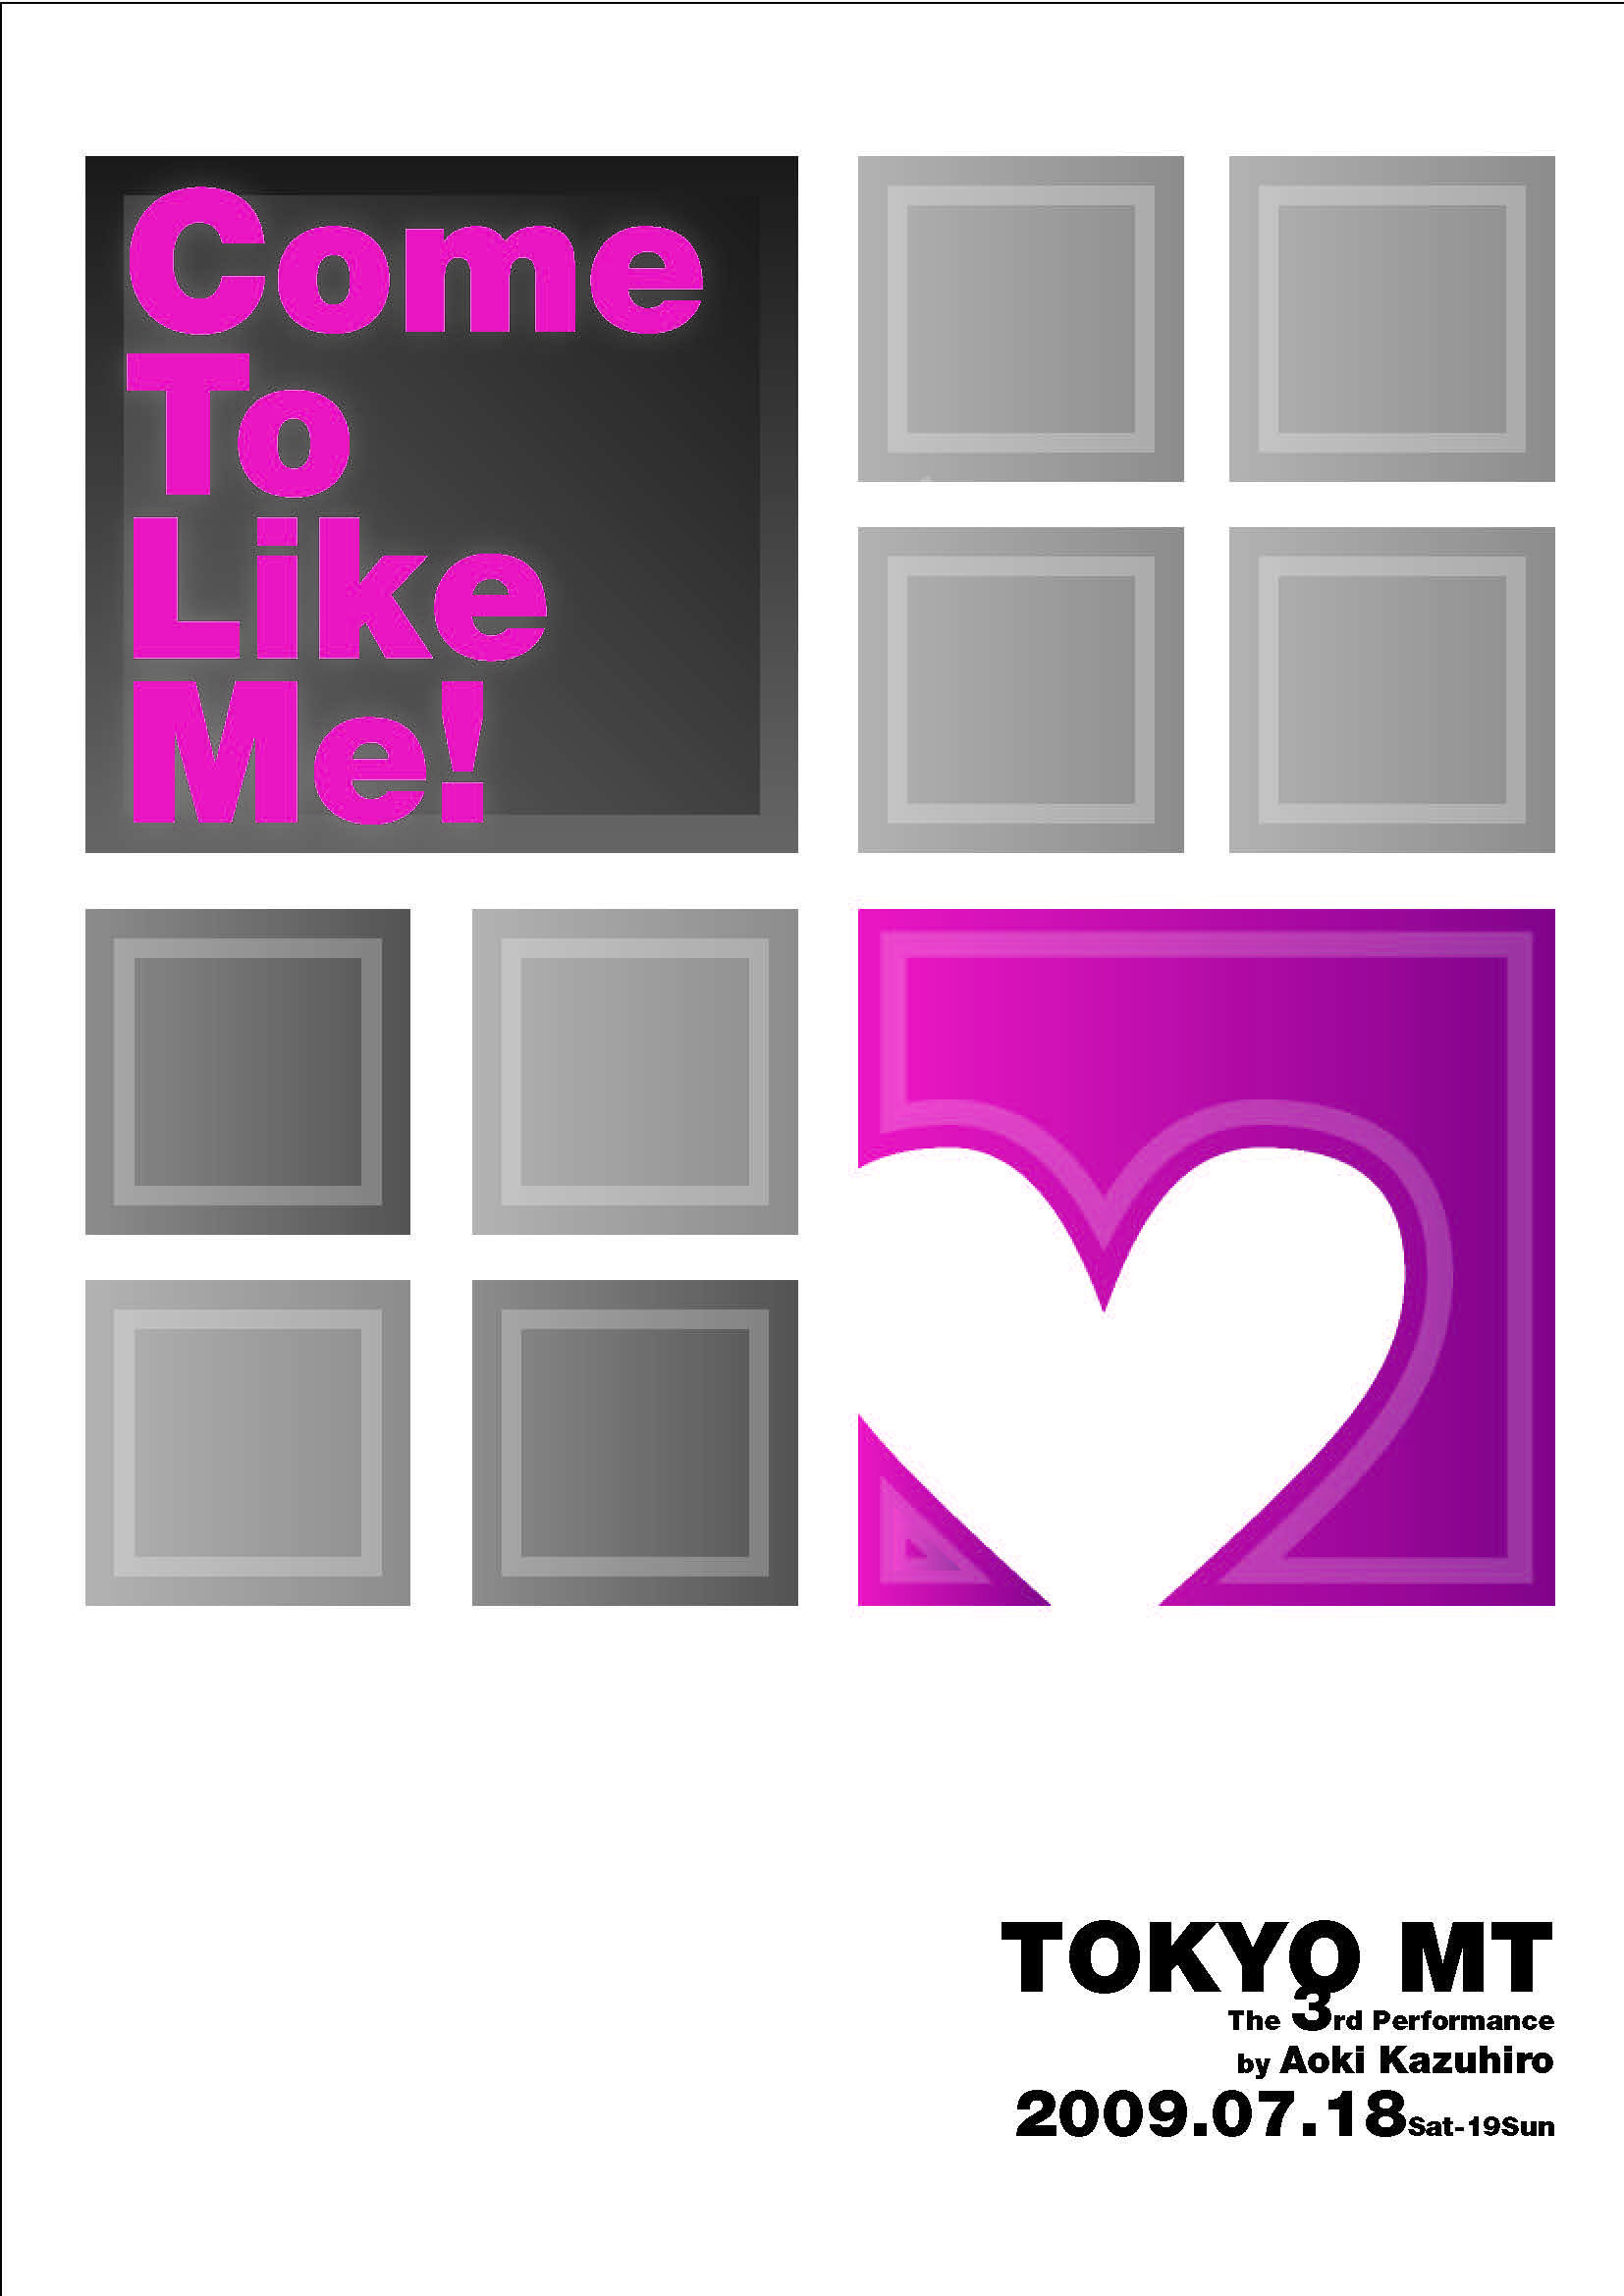 第3回公演Come to like me!